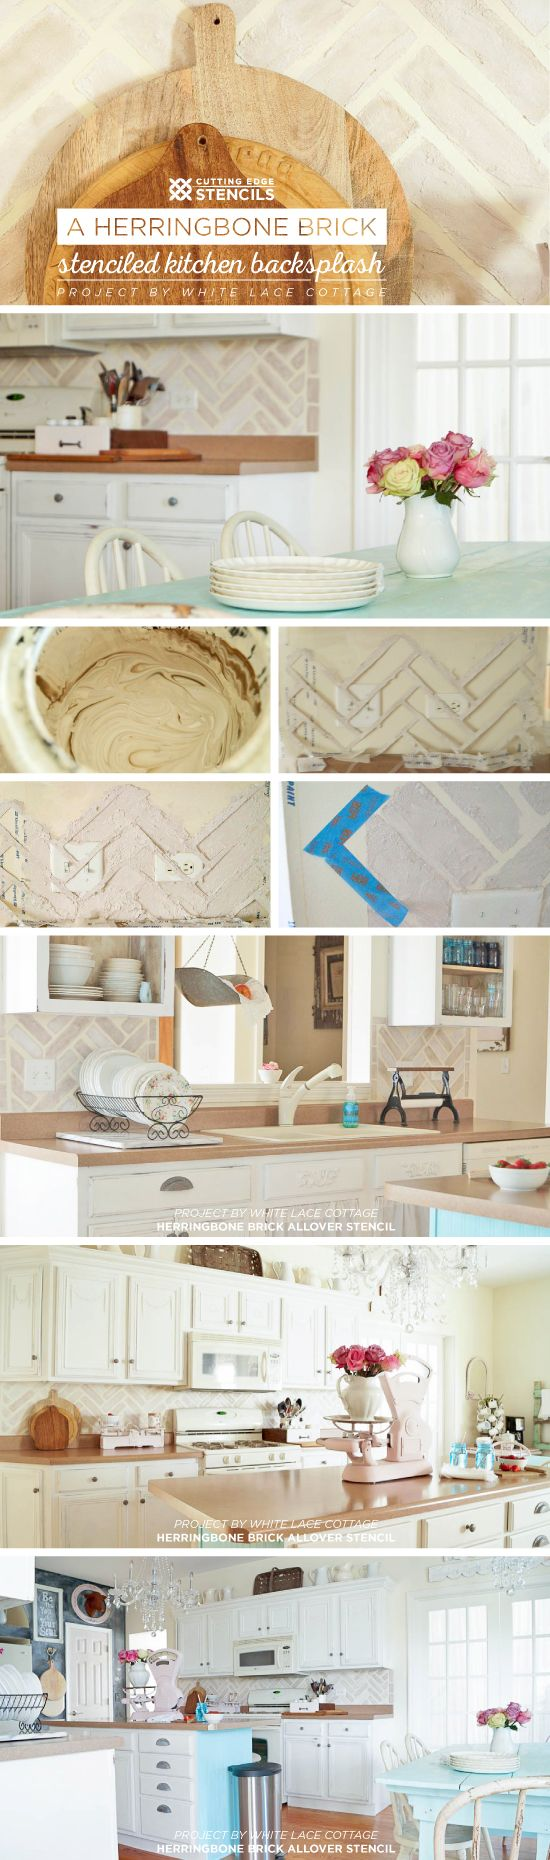 Kitchen Stencil 17 Best Images About Stenciled Painted Kitchens On Pinterest